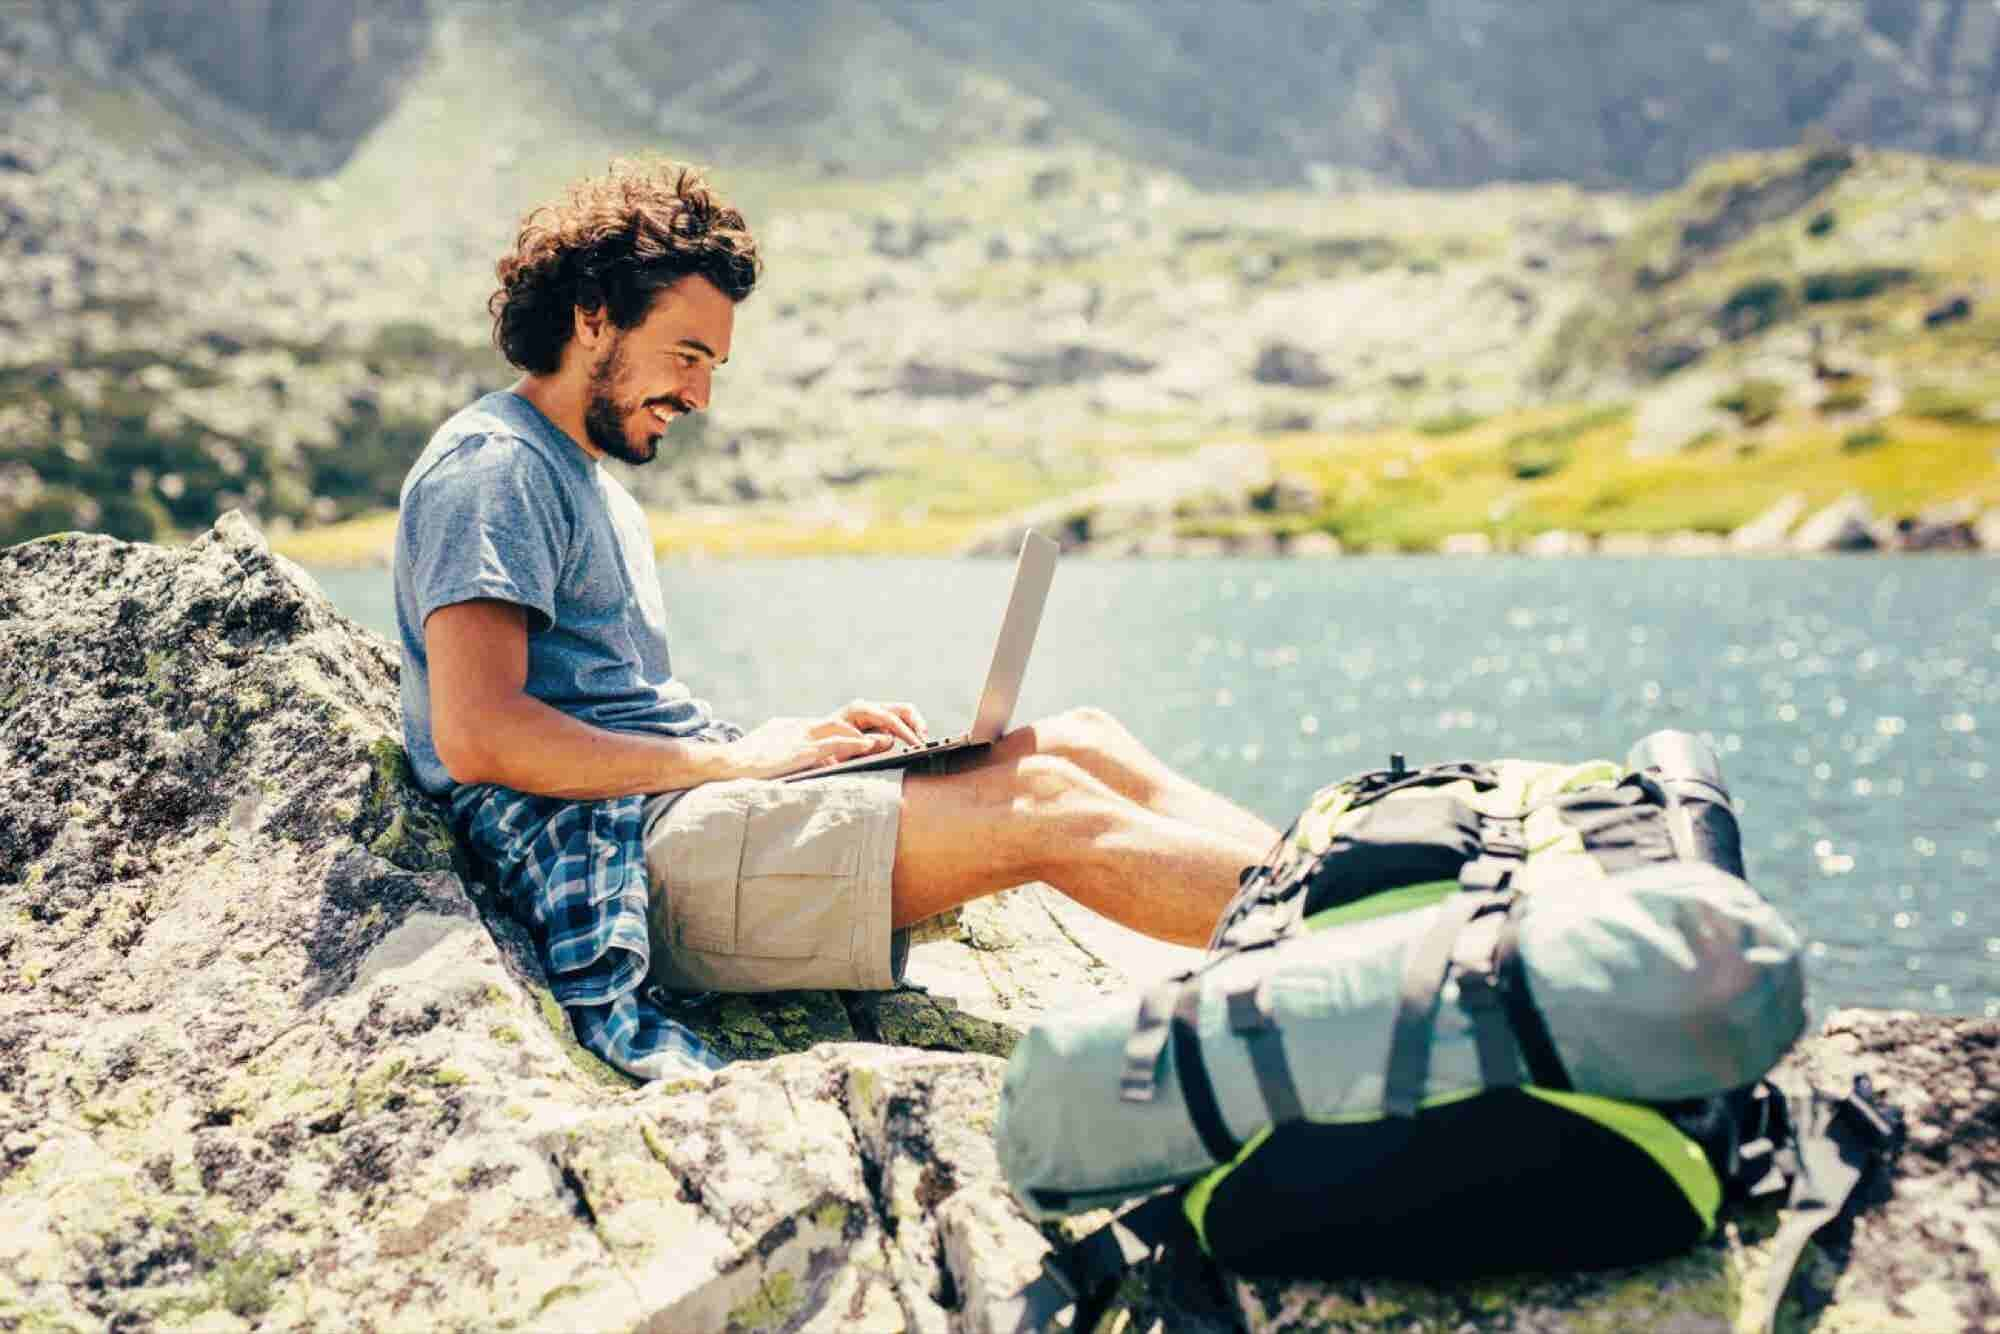 There Is a 'Wanderlust Gene' but You Can be a Digital Nomad Even Without It